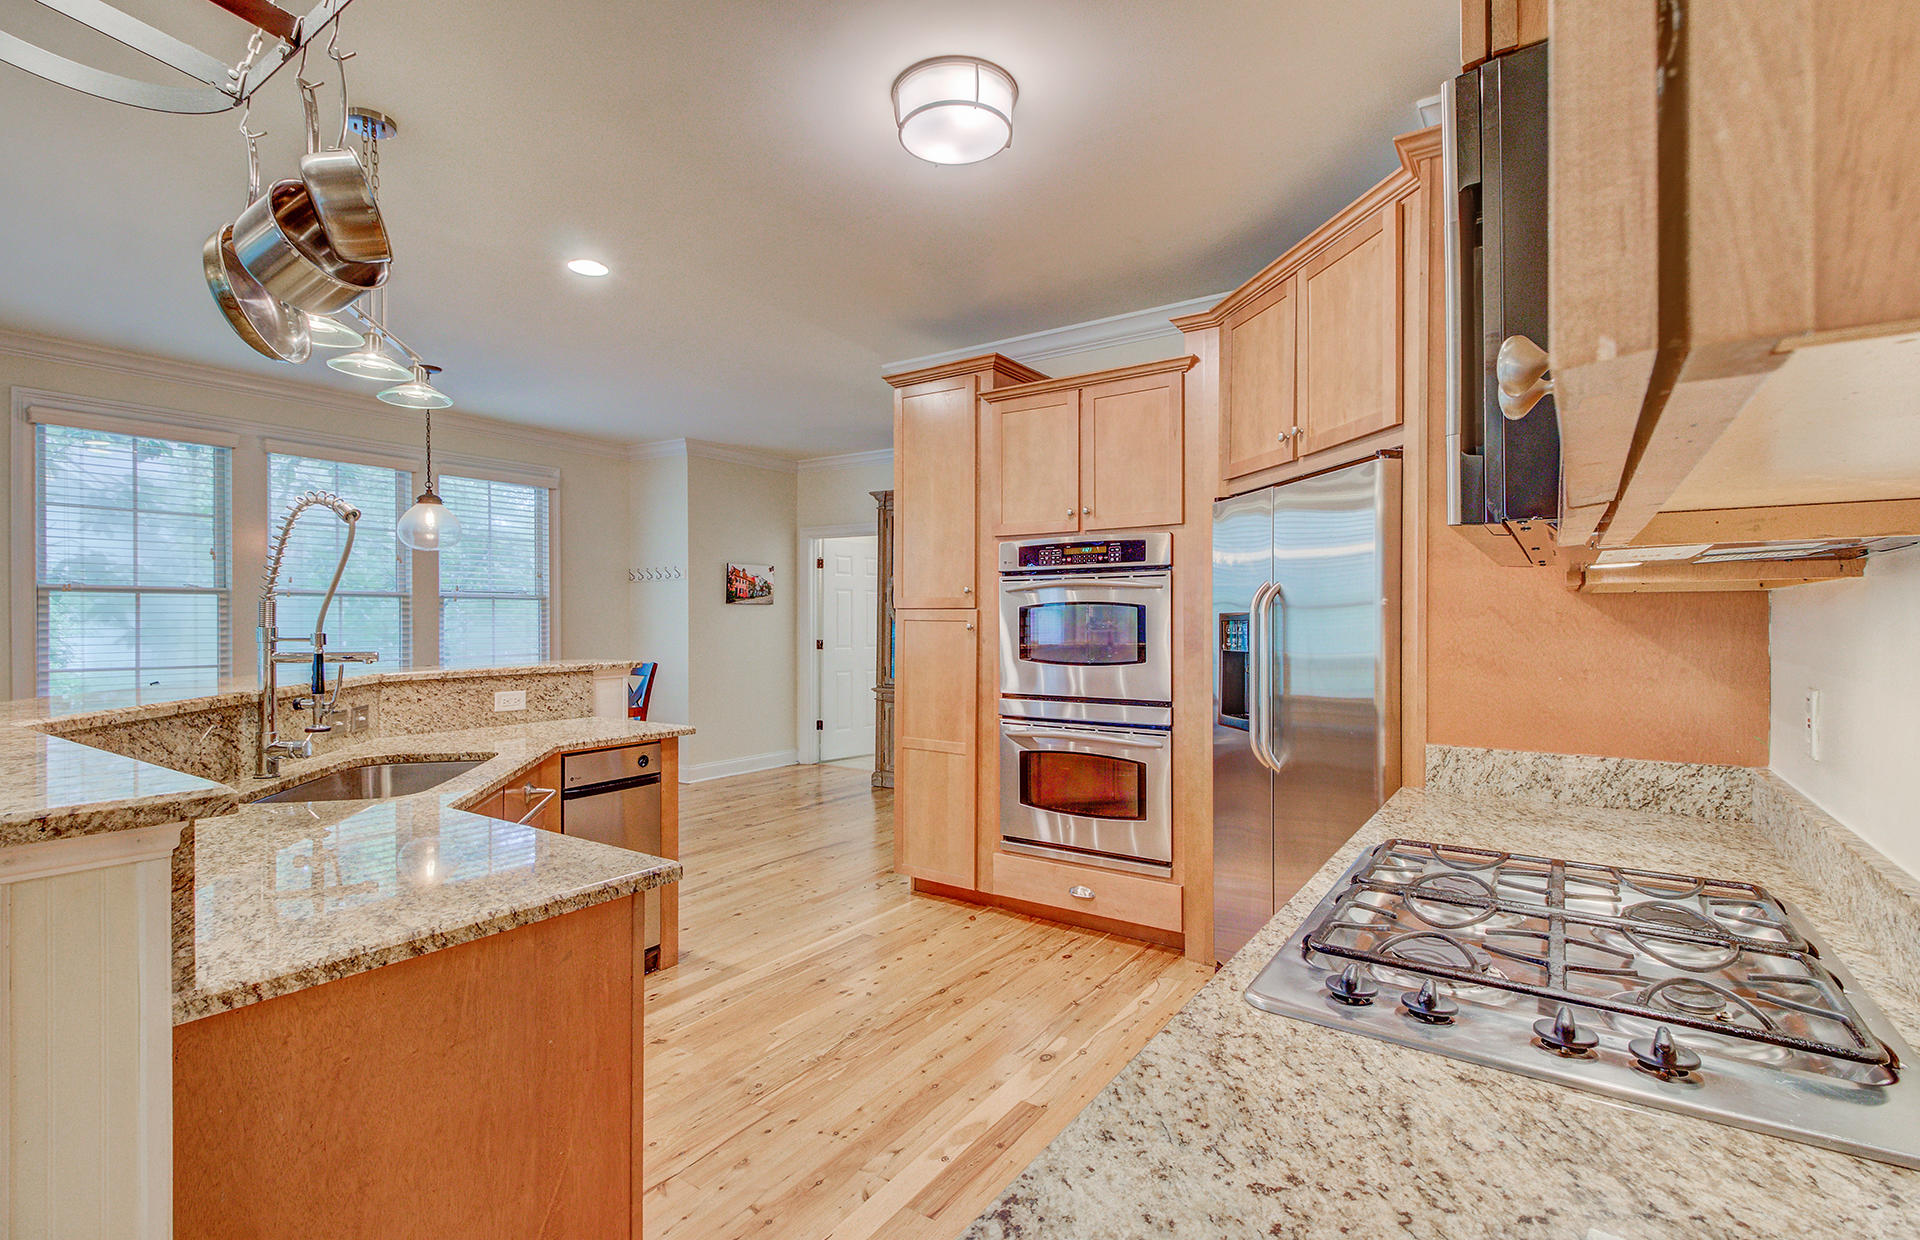 The Villages In St Johns Woods Homes For Sale - 5032 Coral Reef, Johns Island, SC - 25